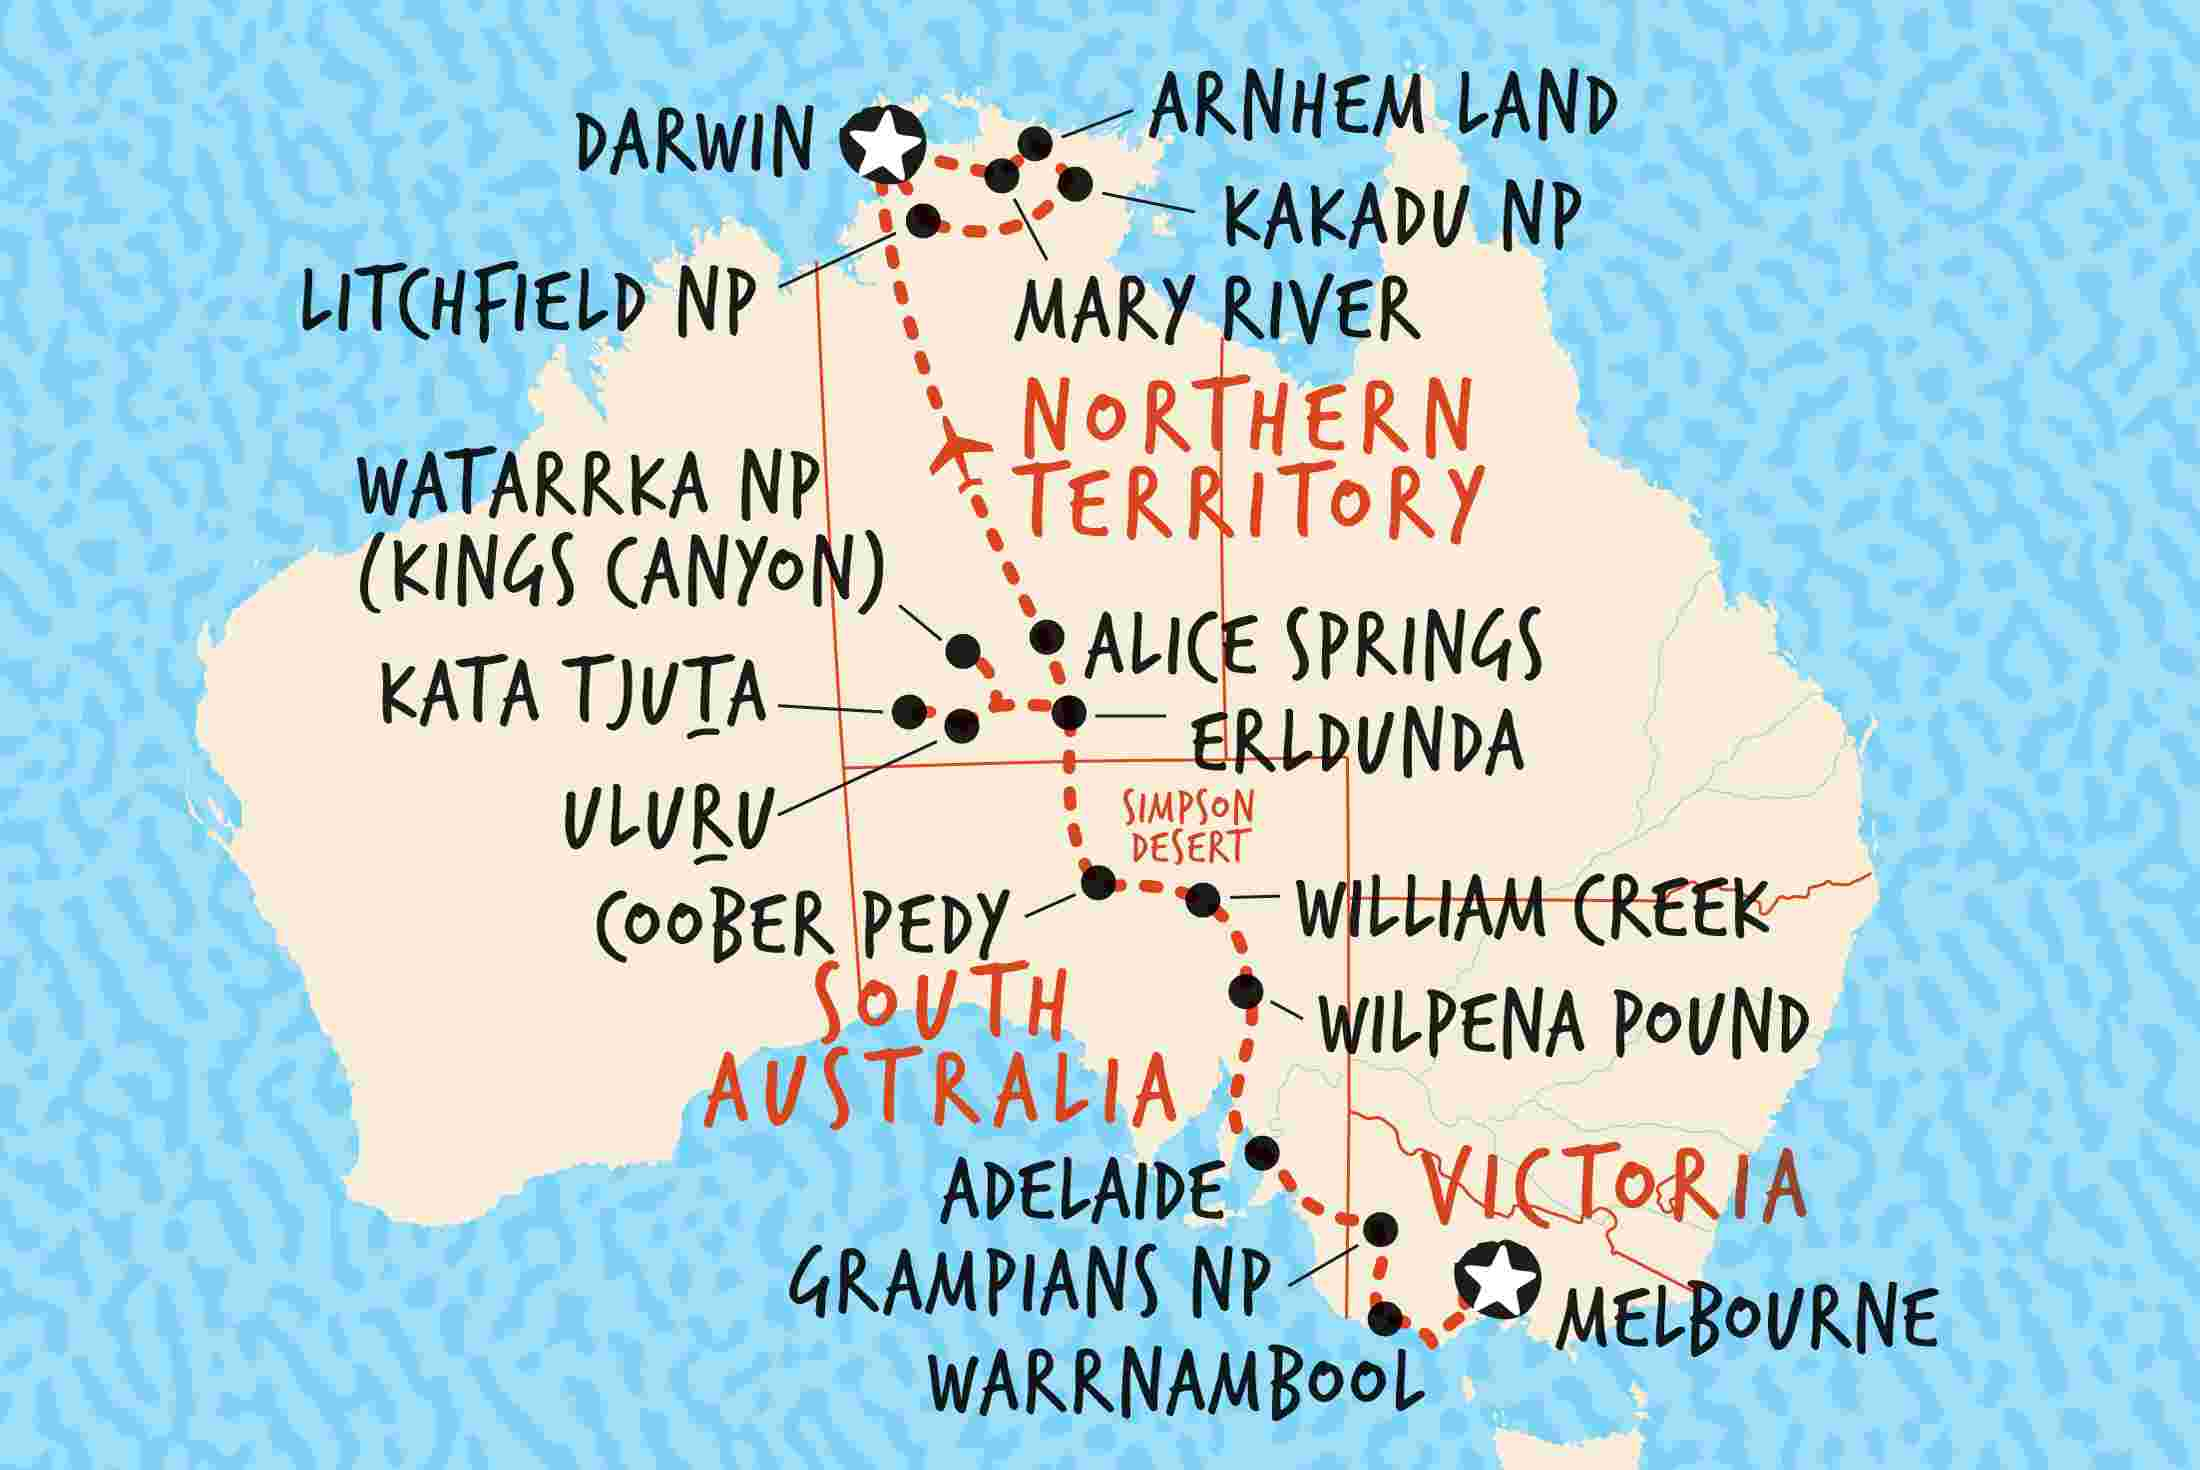 Uluru Tours & Travel - Ayers Rock Tours | Adventure Tours